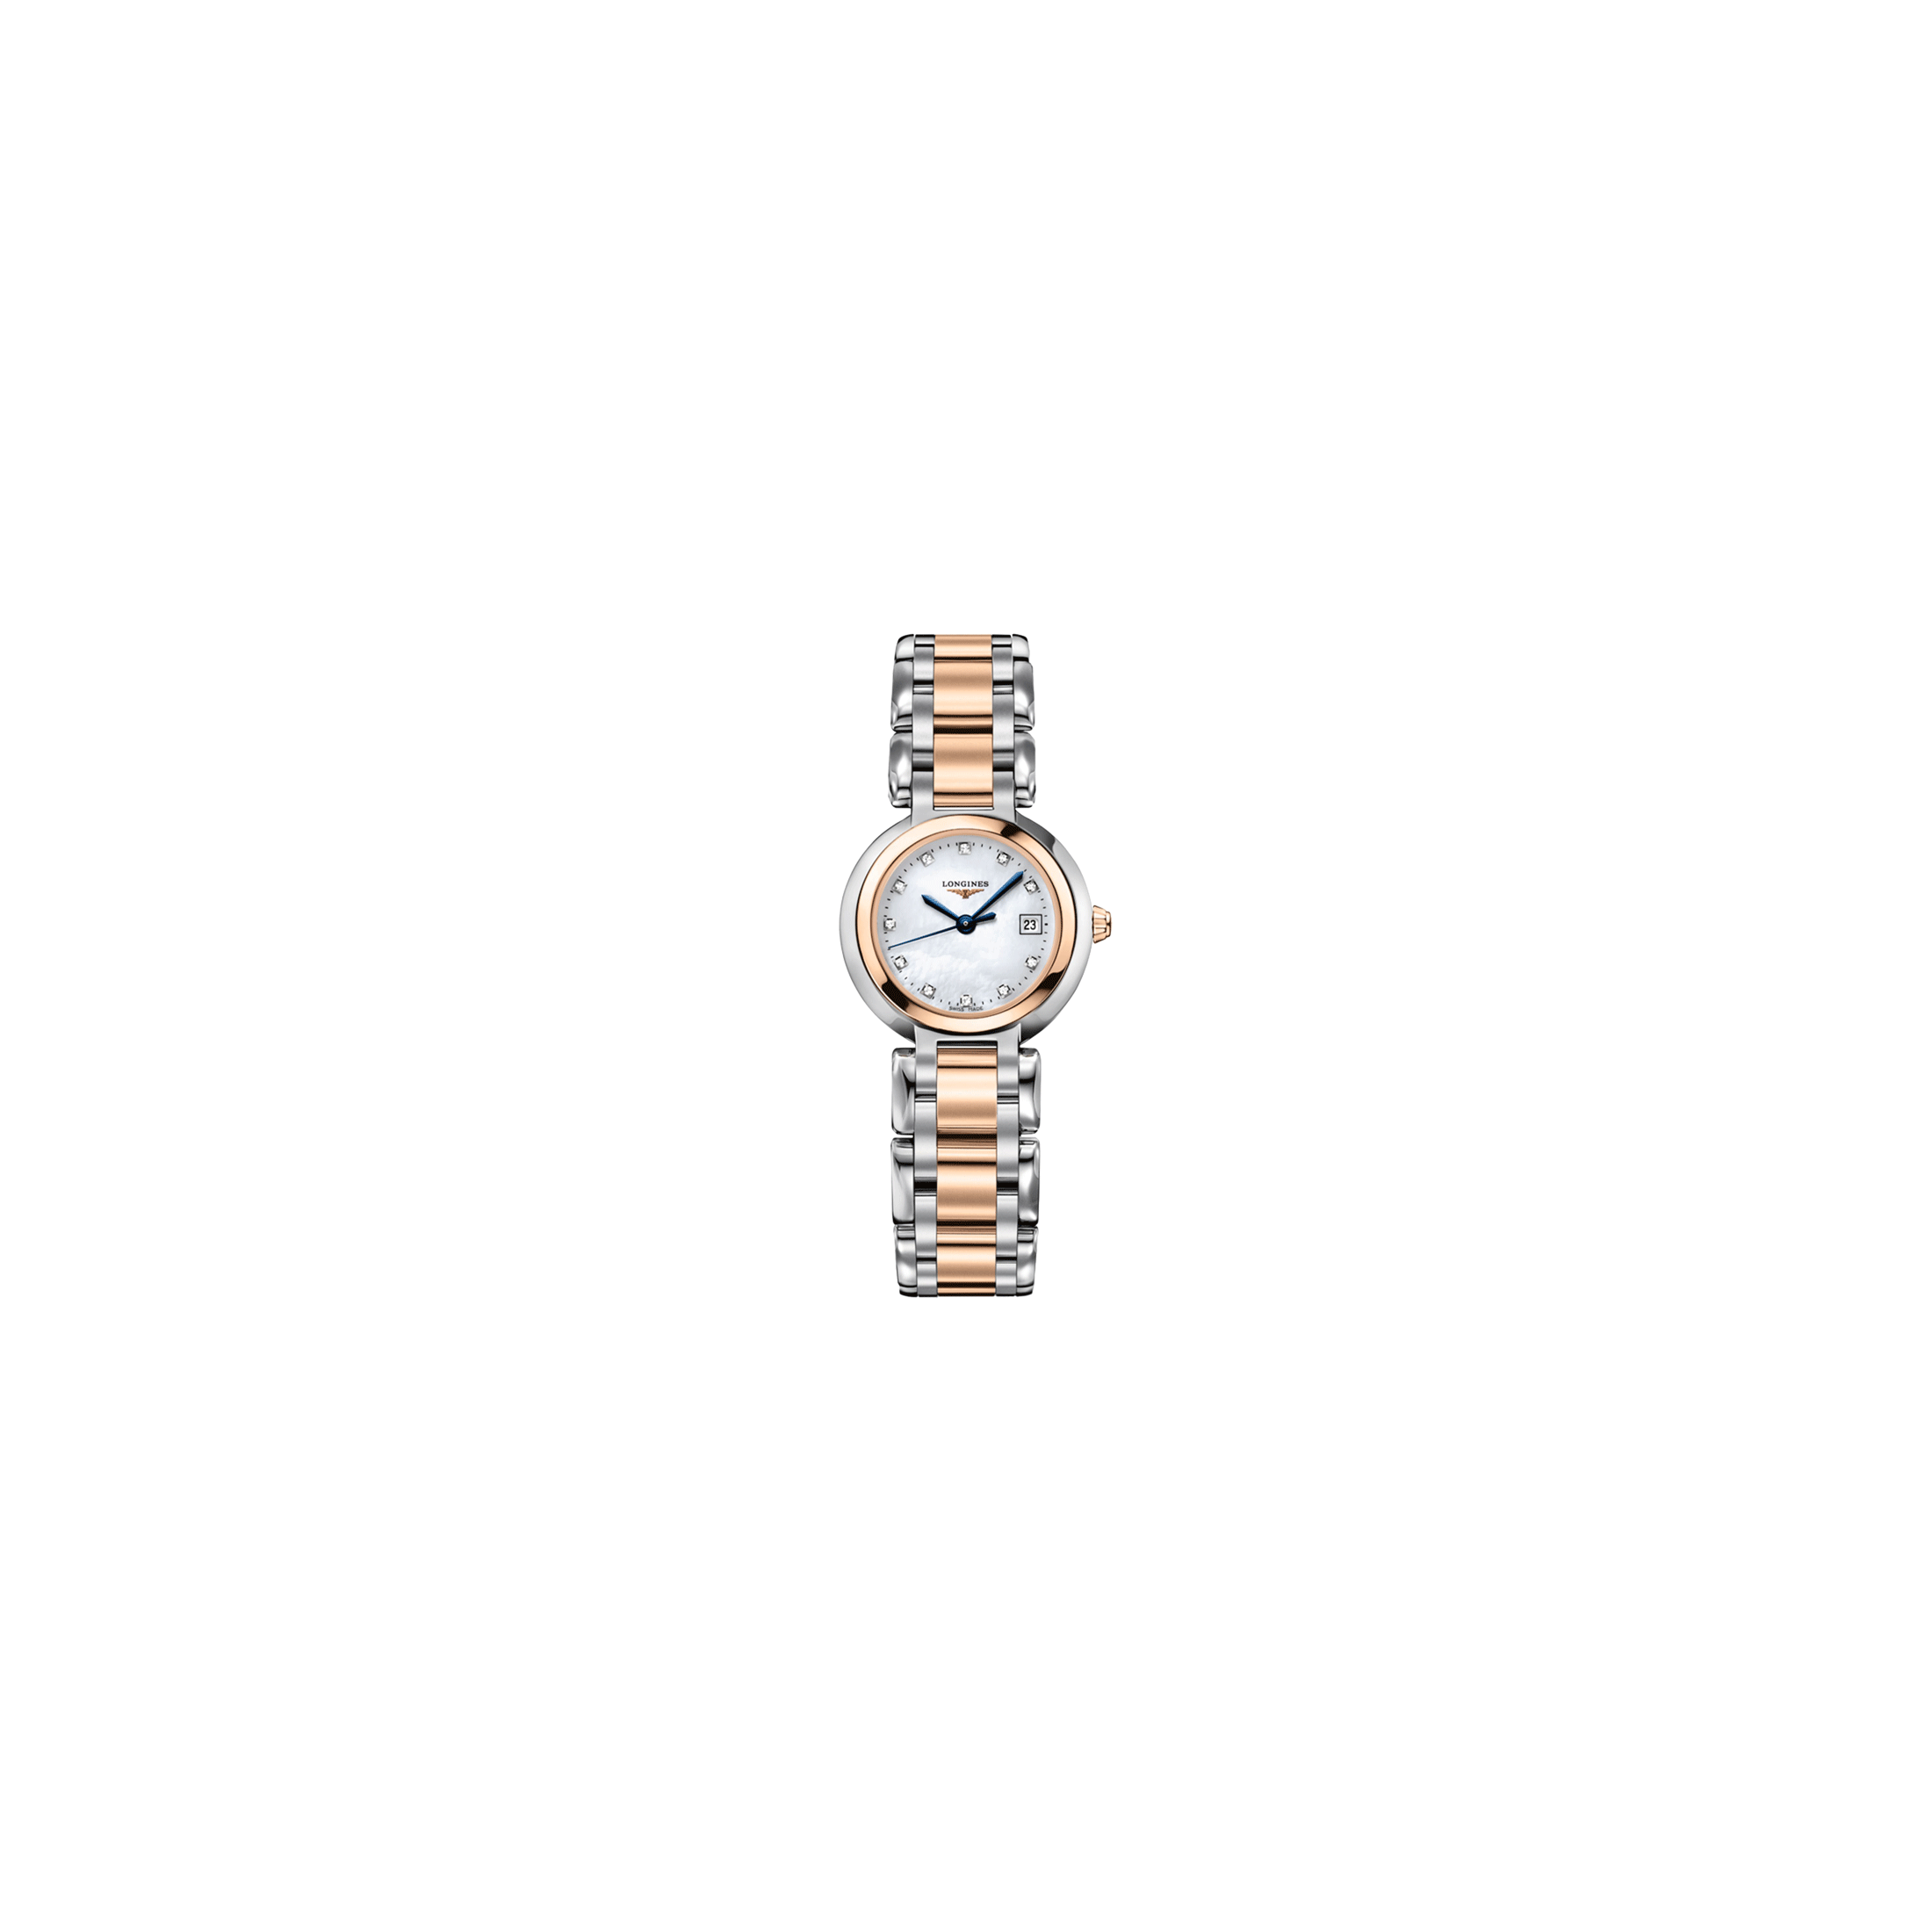 Montre Longines Primaluna quartz cadran nacre index diamants bracelet acier et or rose 26,5 mm - SOLDAT PL